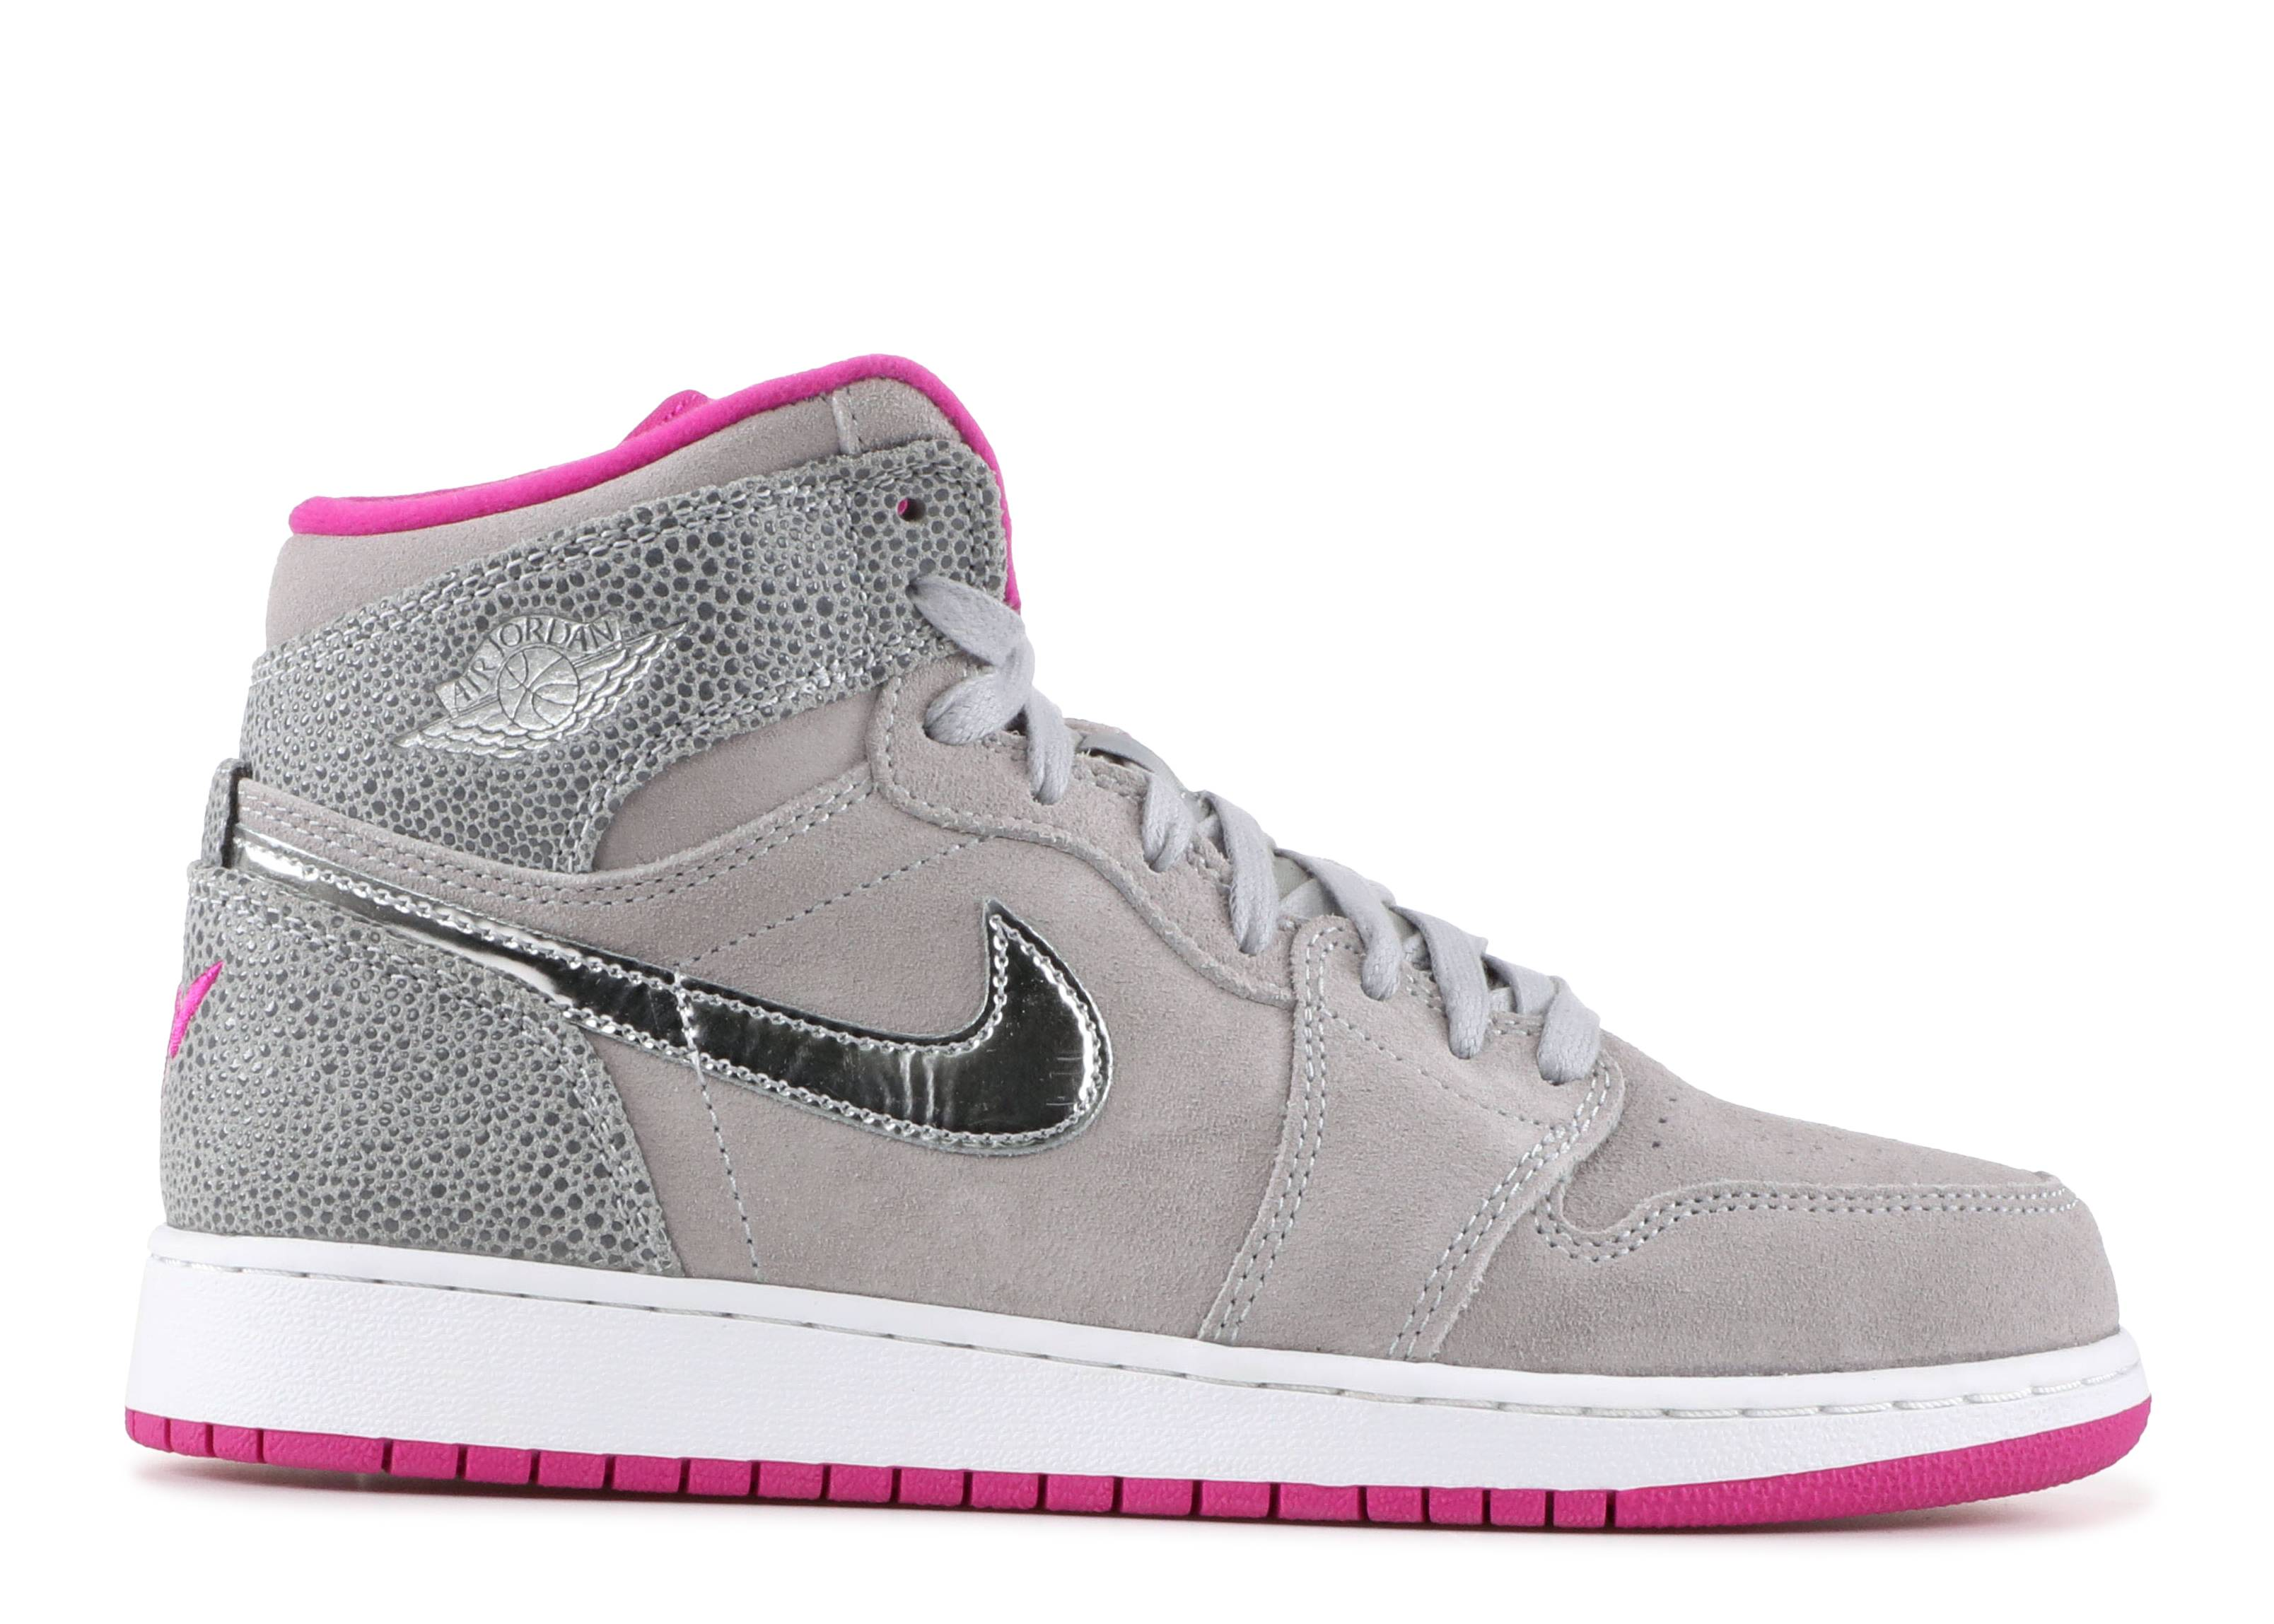 timeless design 42072 fa04c Air jordan 1 retro high GG